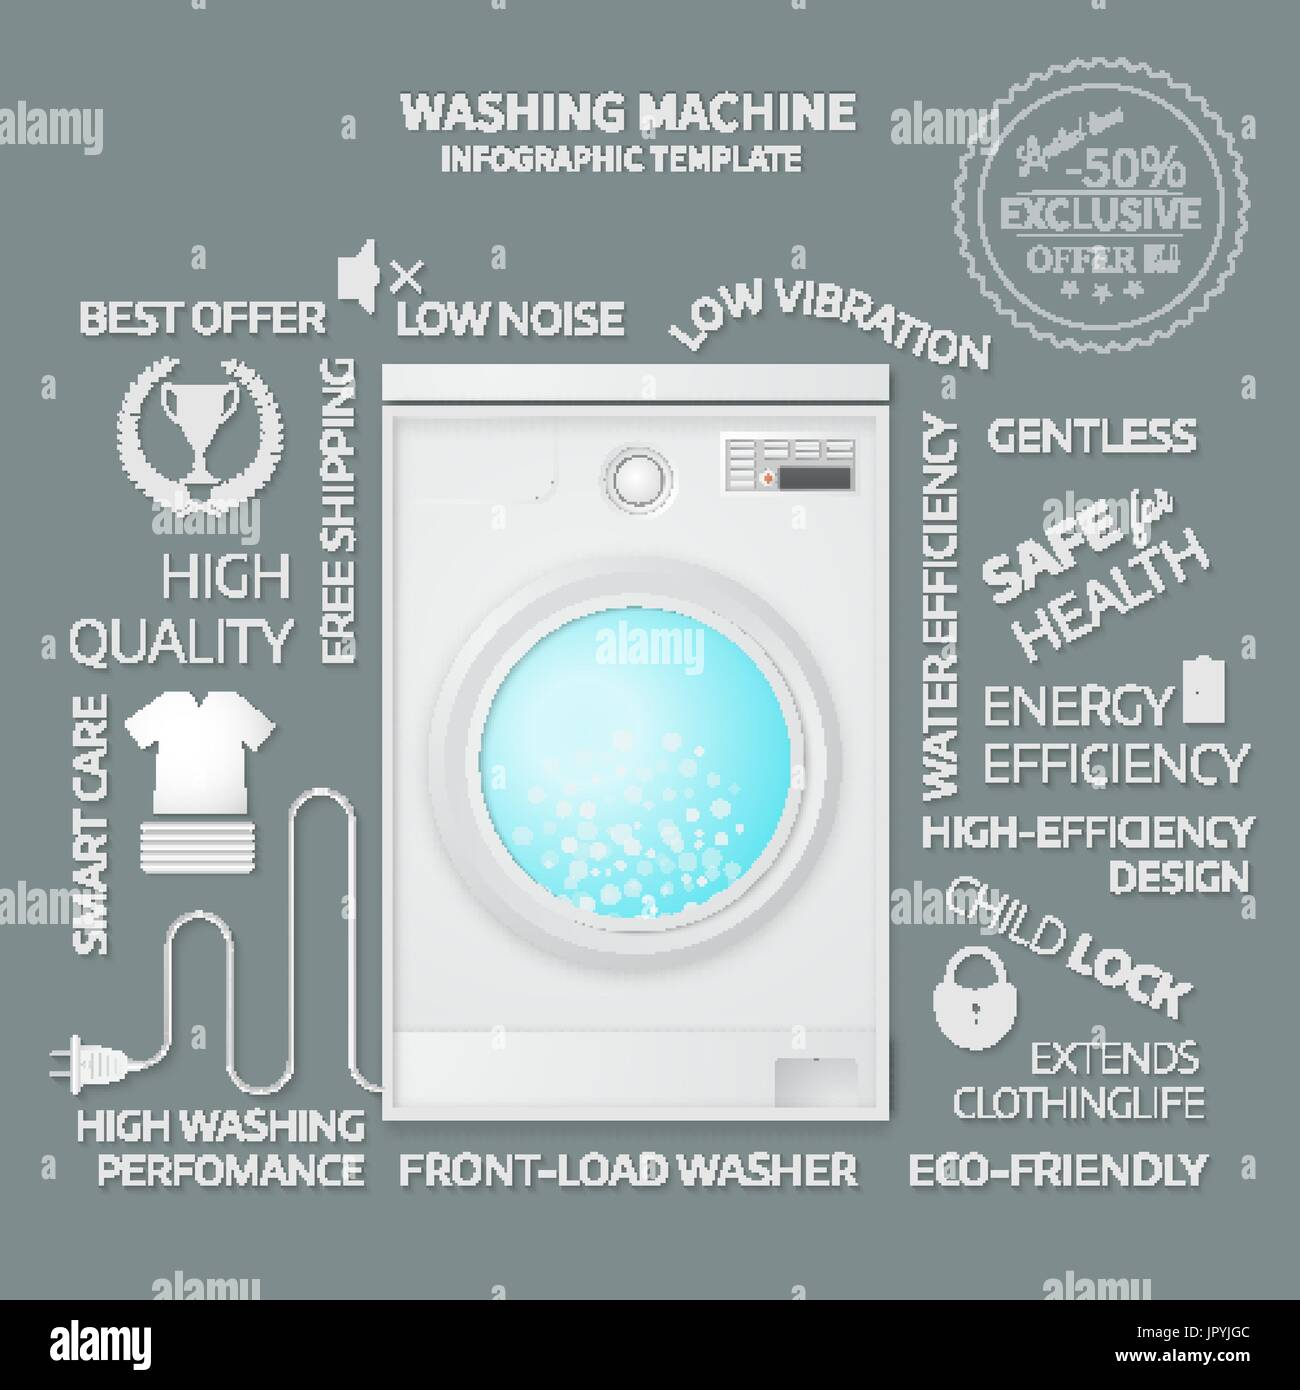 Vector Illustration Of Washer Infographic Template Cover